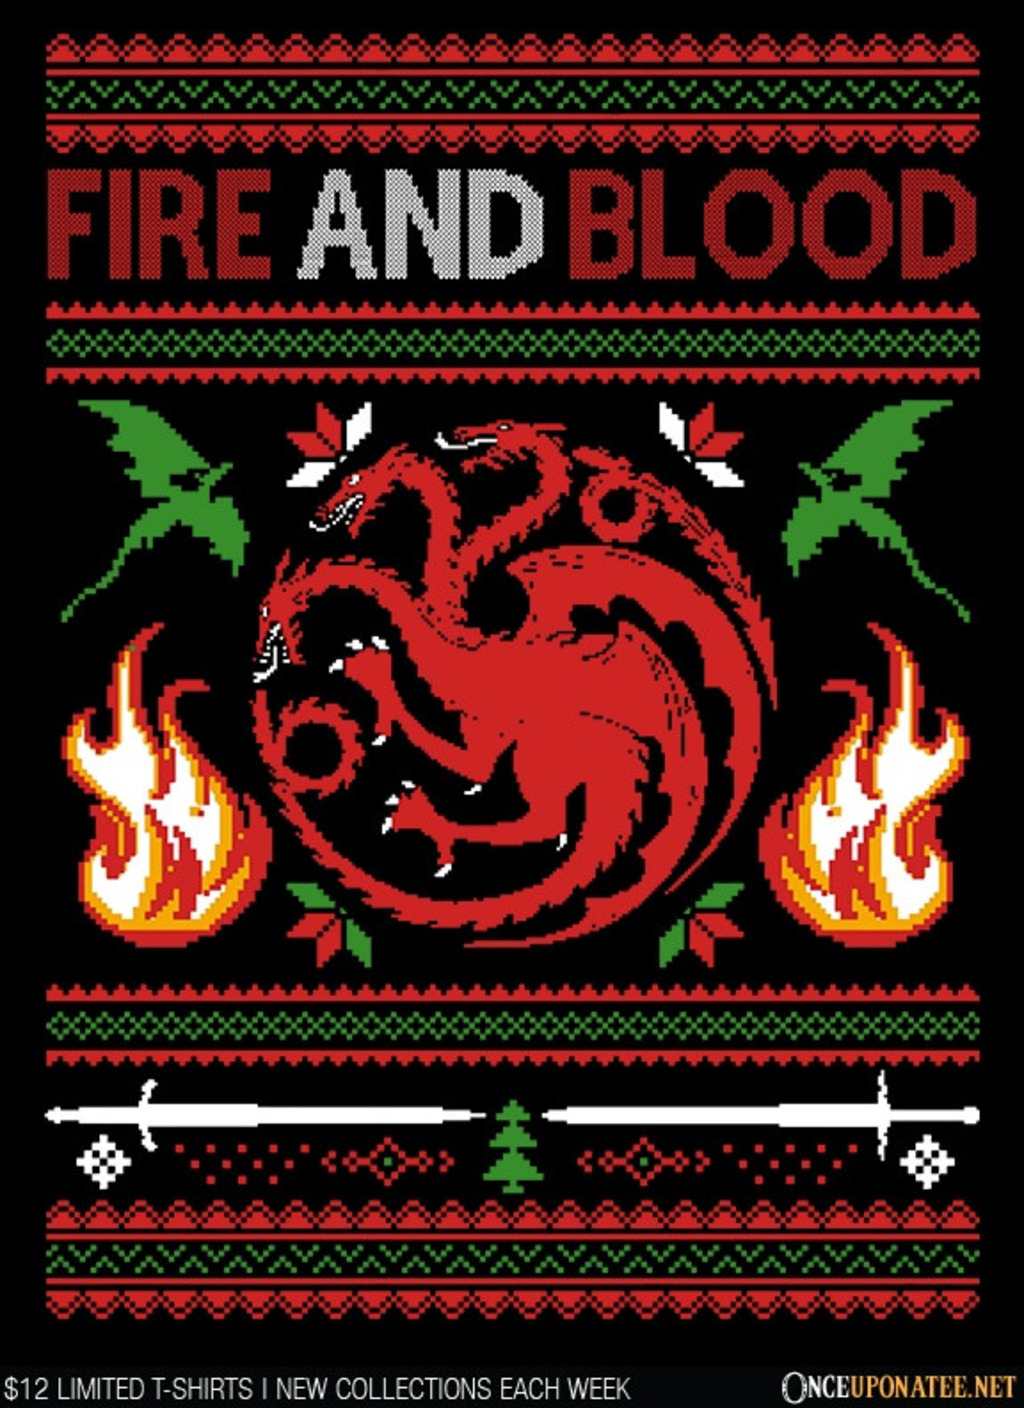 Once Upon a Tee: Sweater of Dragons